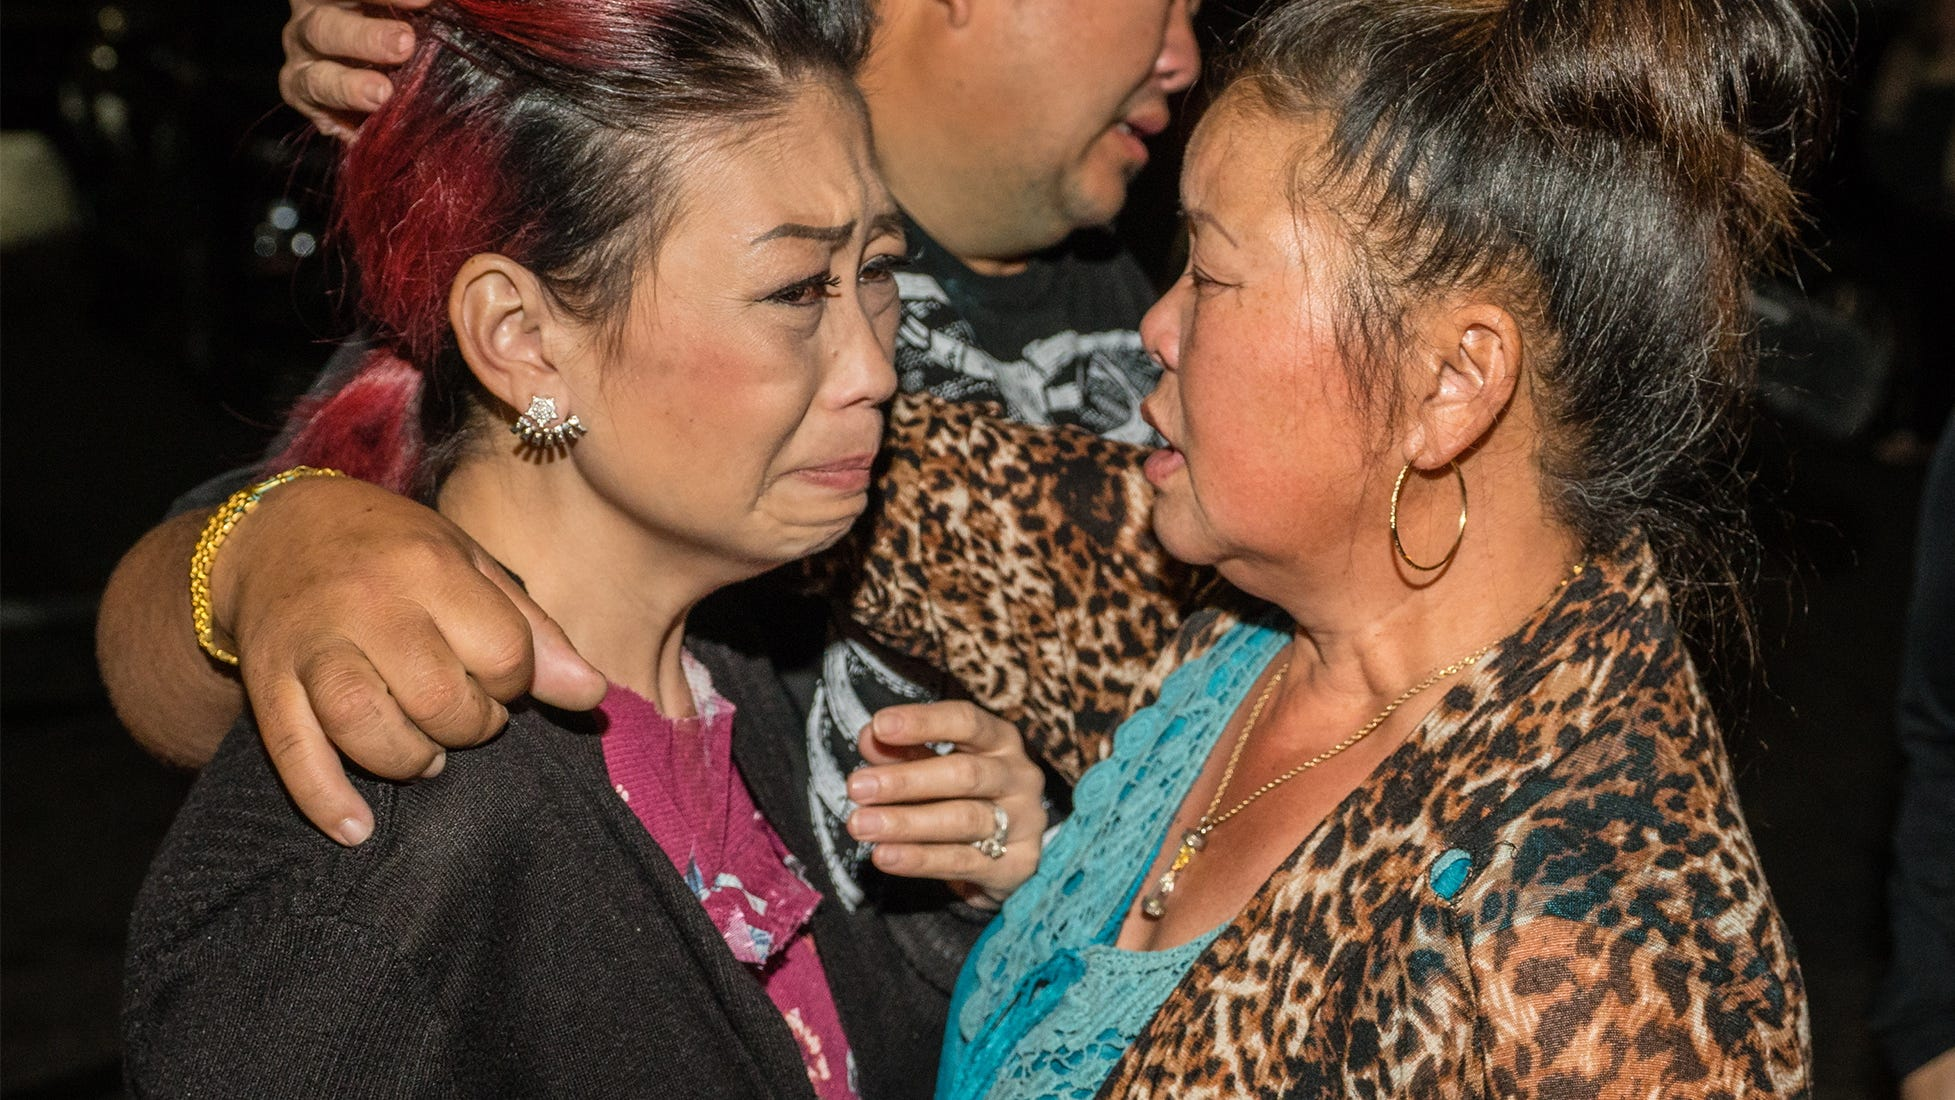 Fresno shooting: Hmong community says victims are not gang members